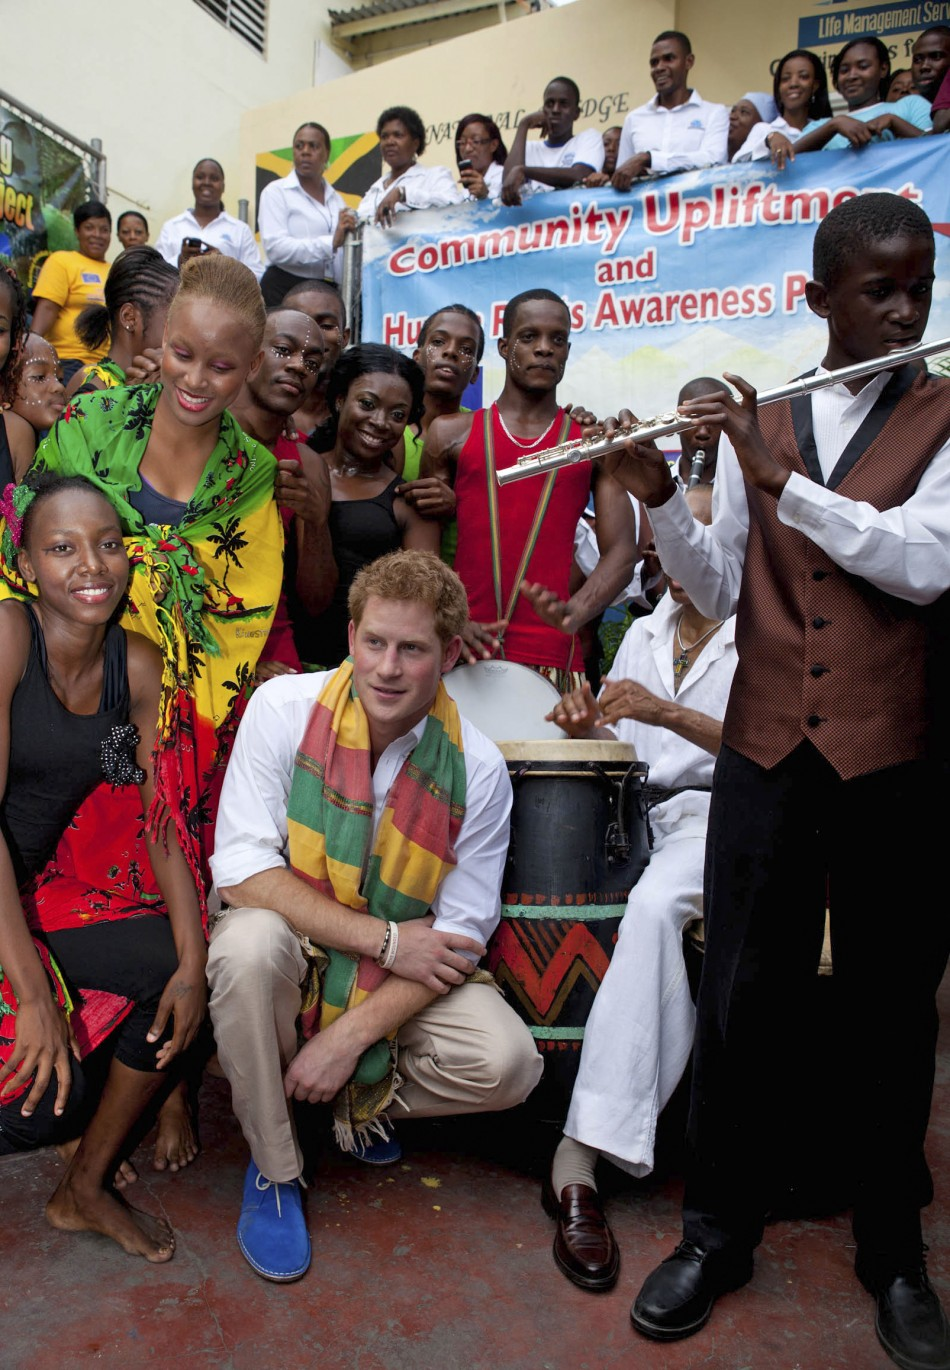 Prince Harry039s visit to Brazil and Jamaica